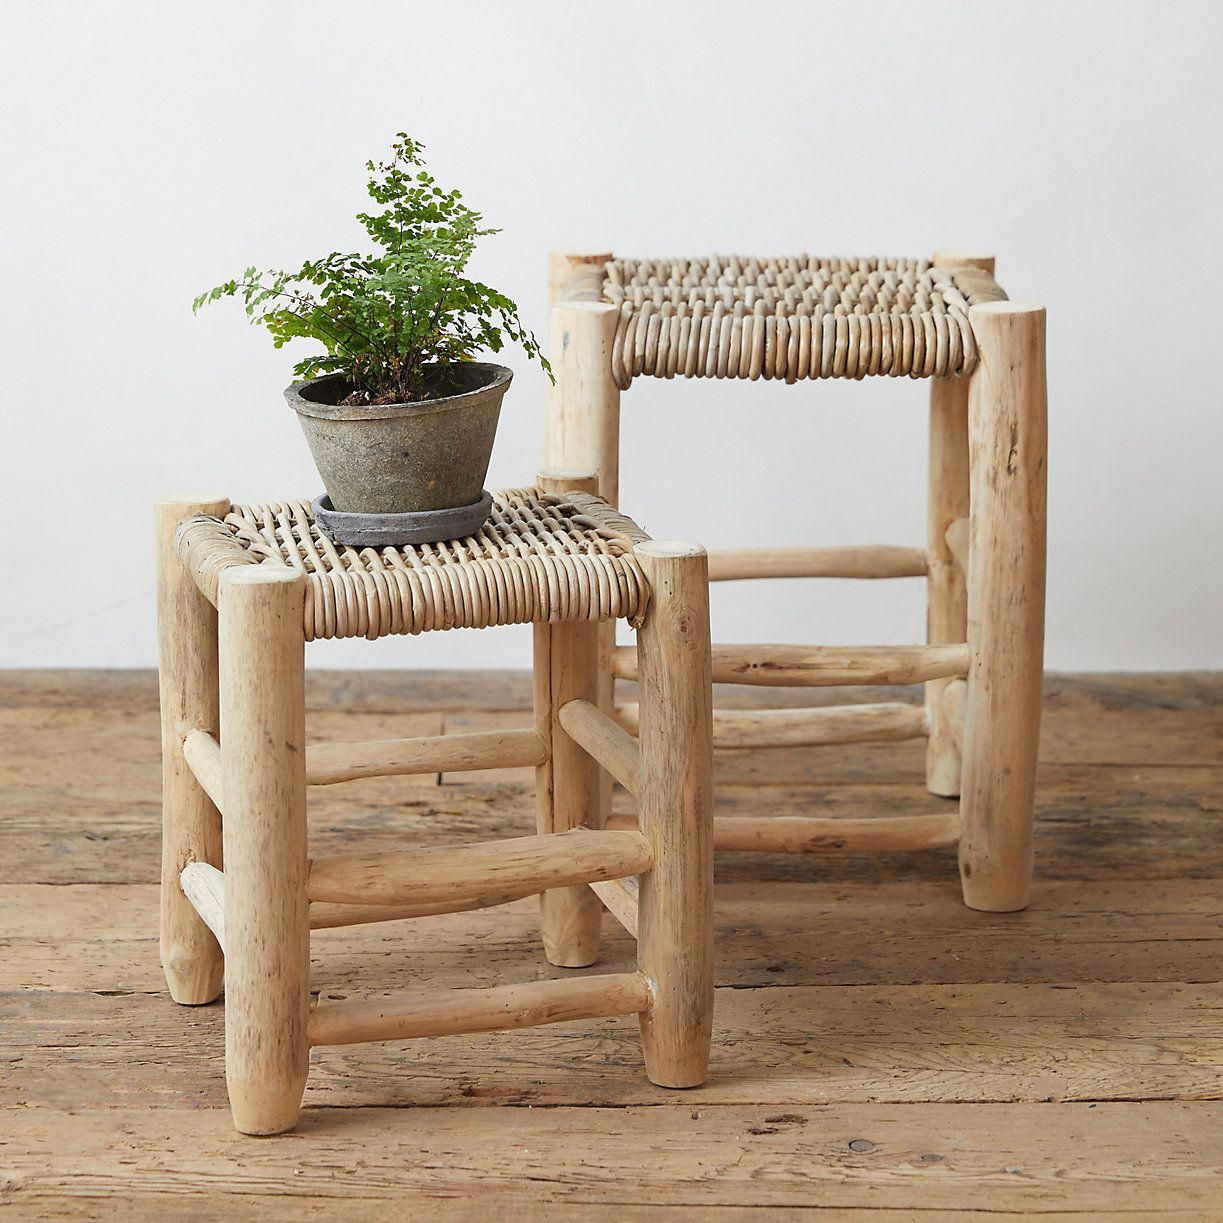 FoldingChairsCheapest (With images) Rattan stool, Stool